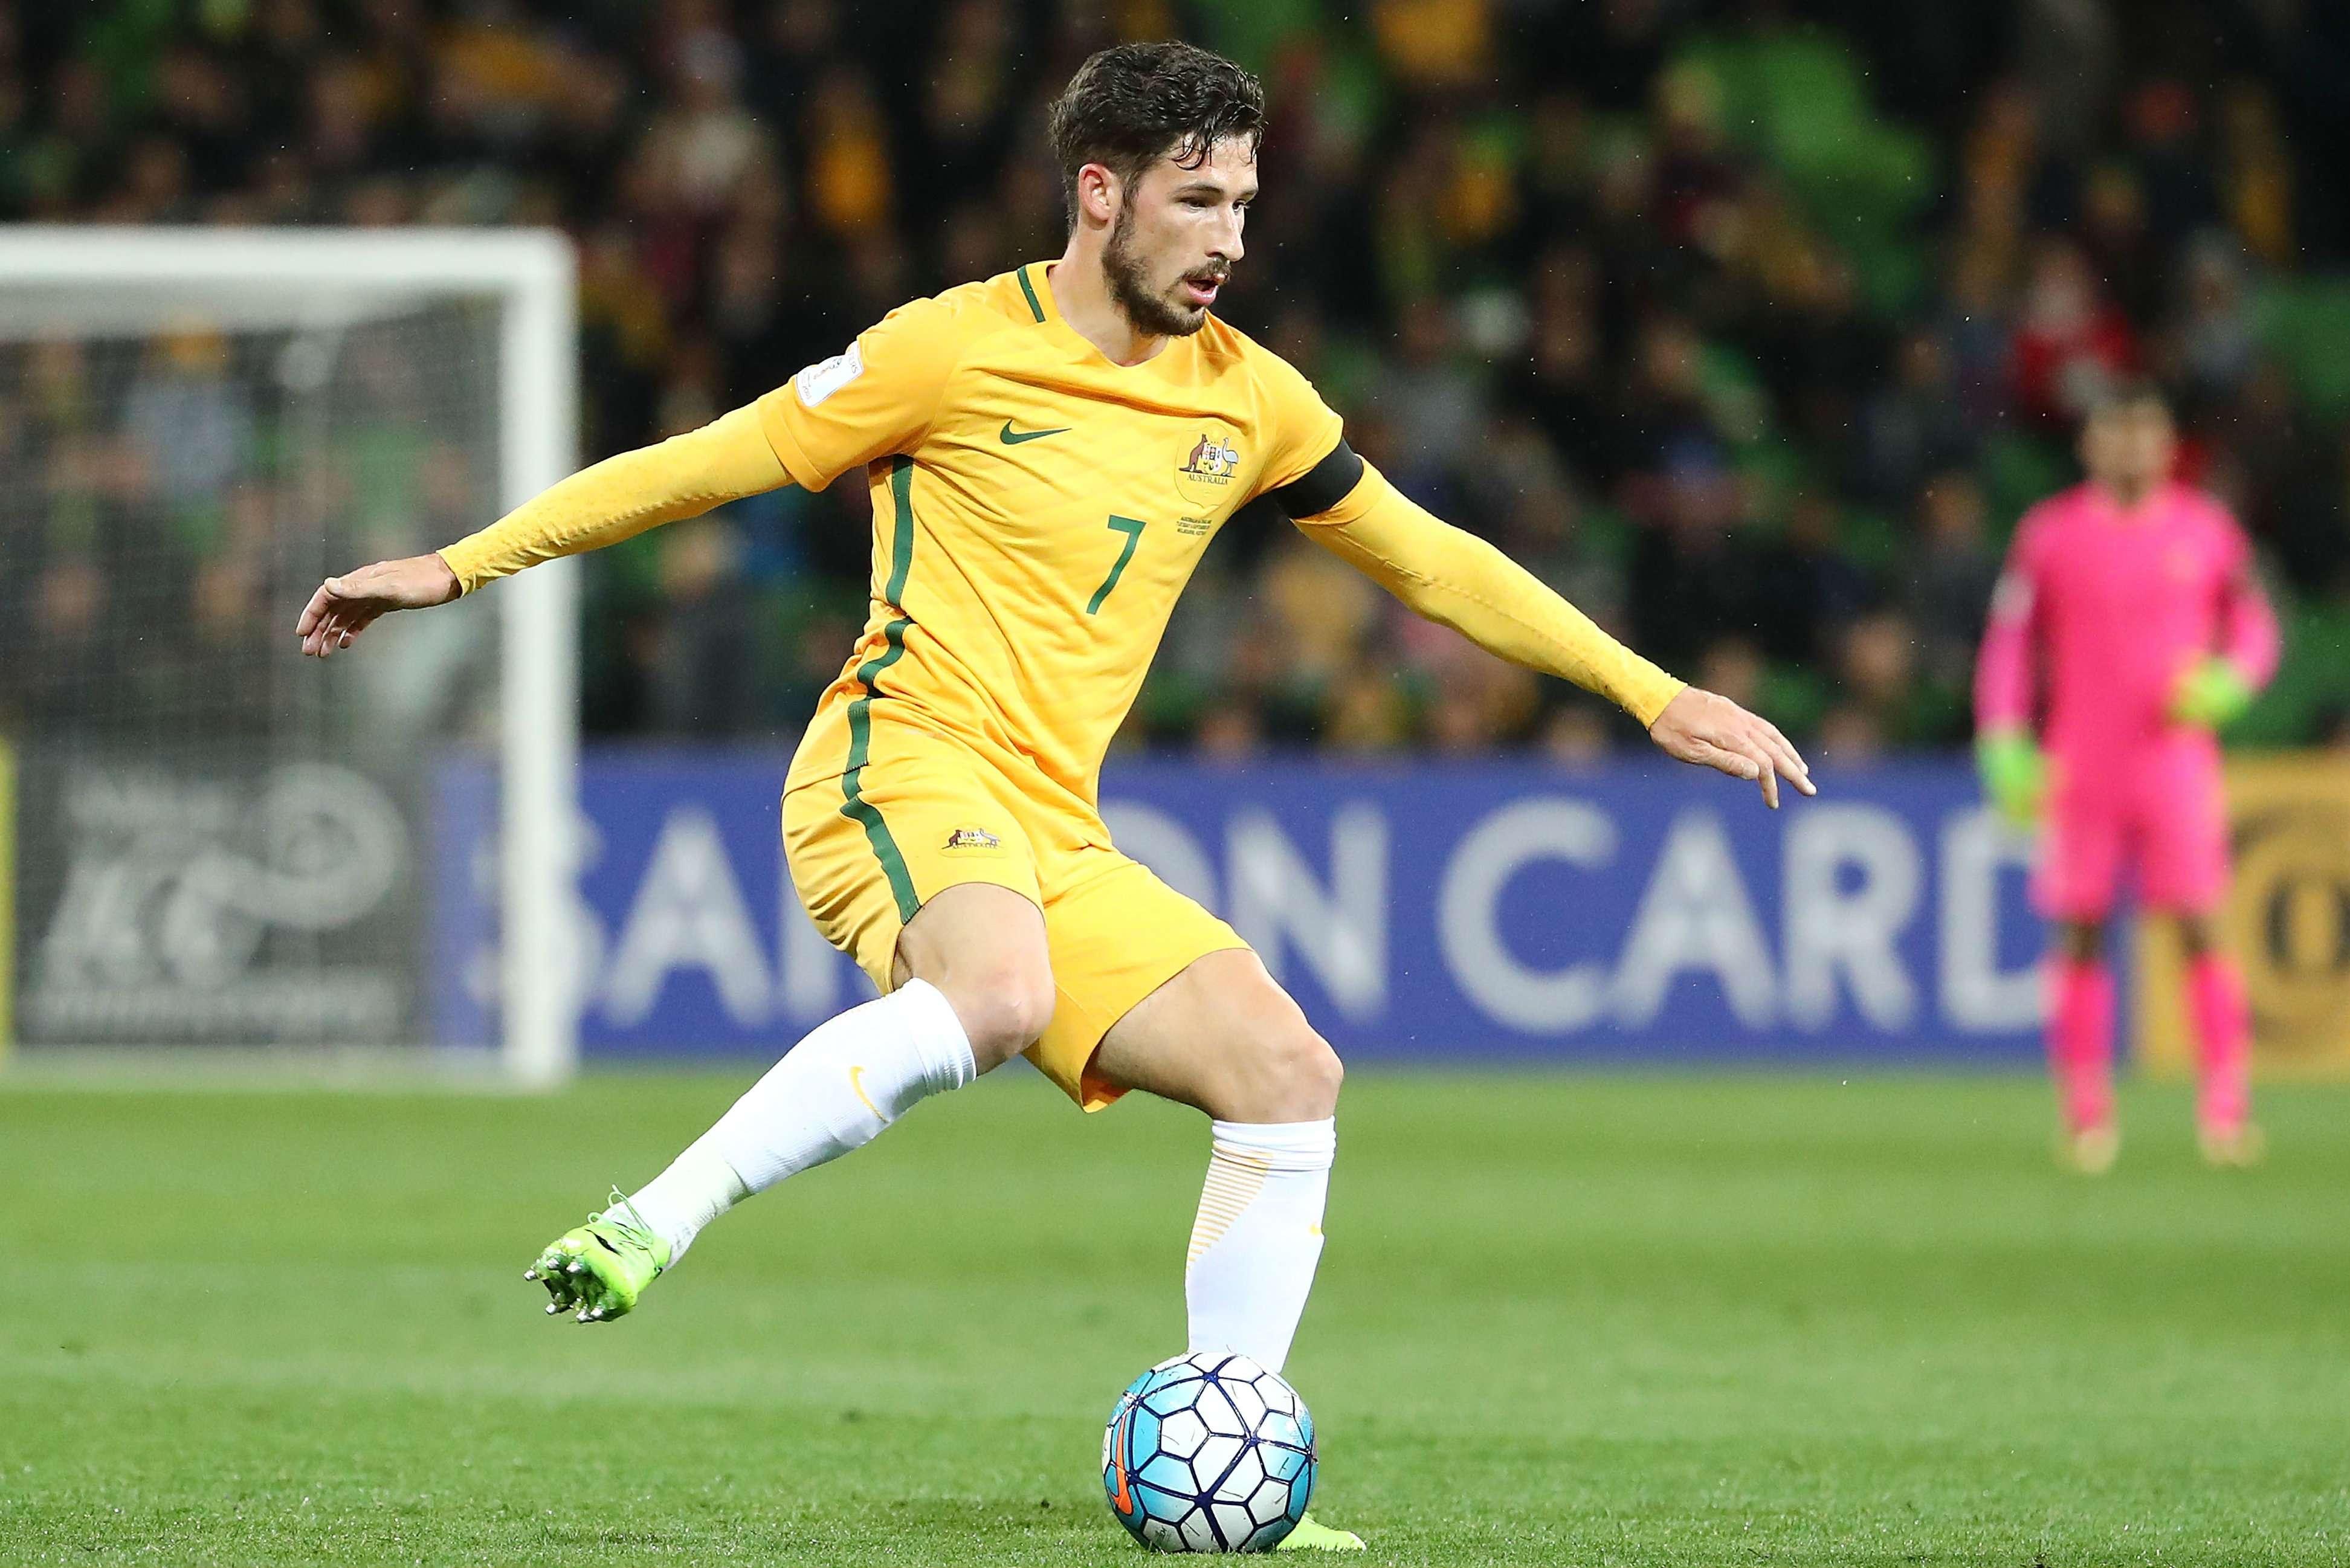 Mat Leckie will hope to bring his club form into the clash with Syria.